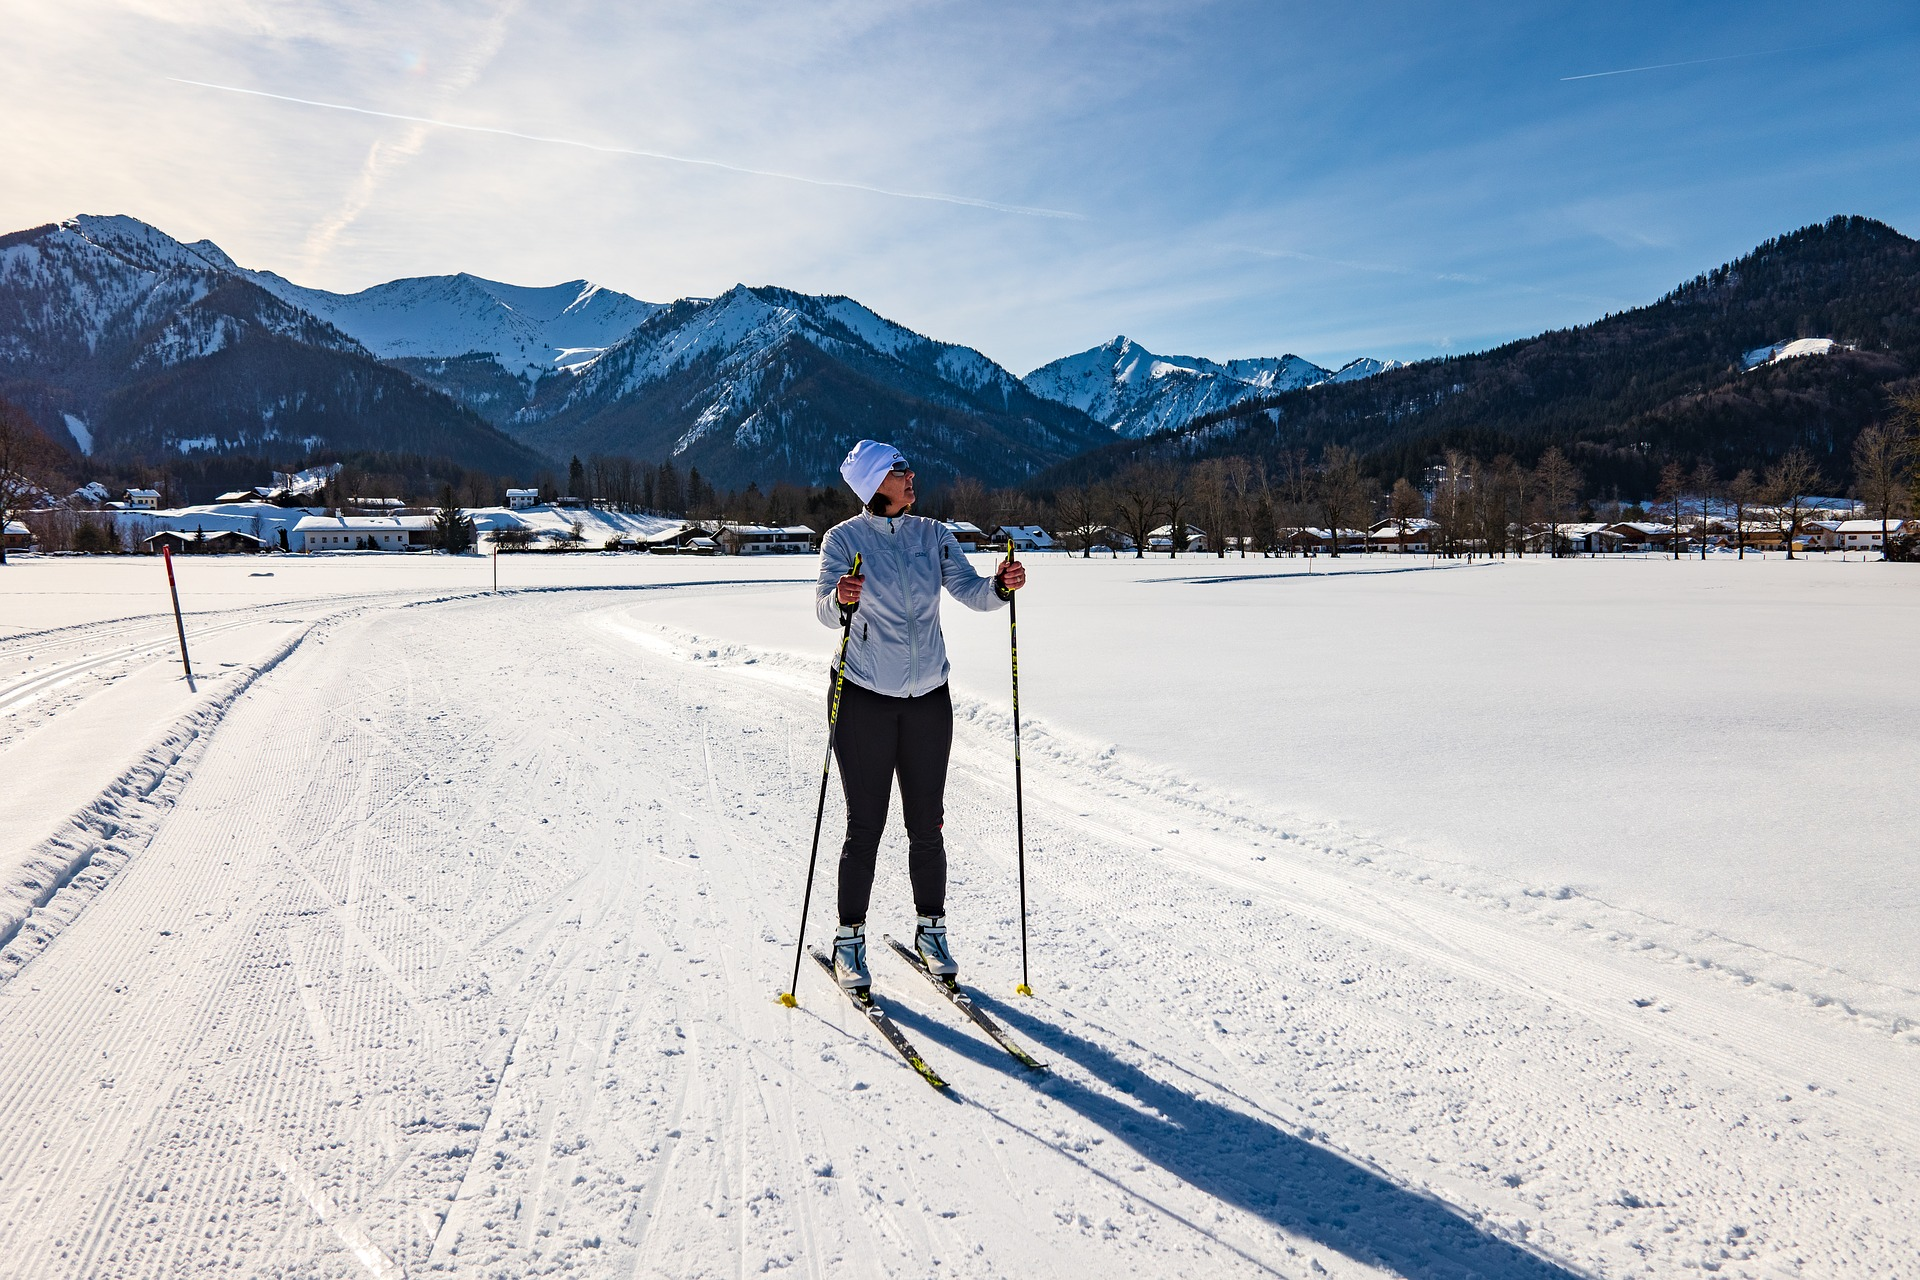 cross country skiing, xc skiing, cross-country skiing Alps, cross-country ski trails, introduction to cross-country skiing